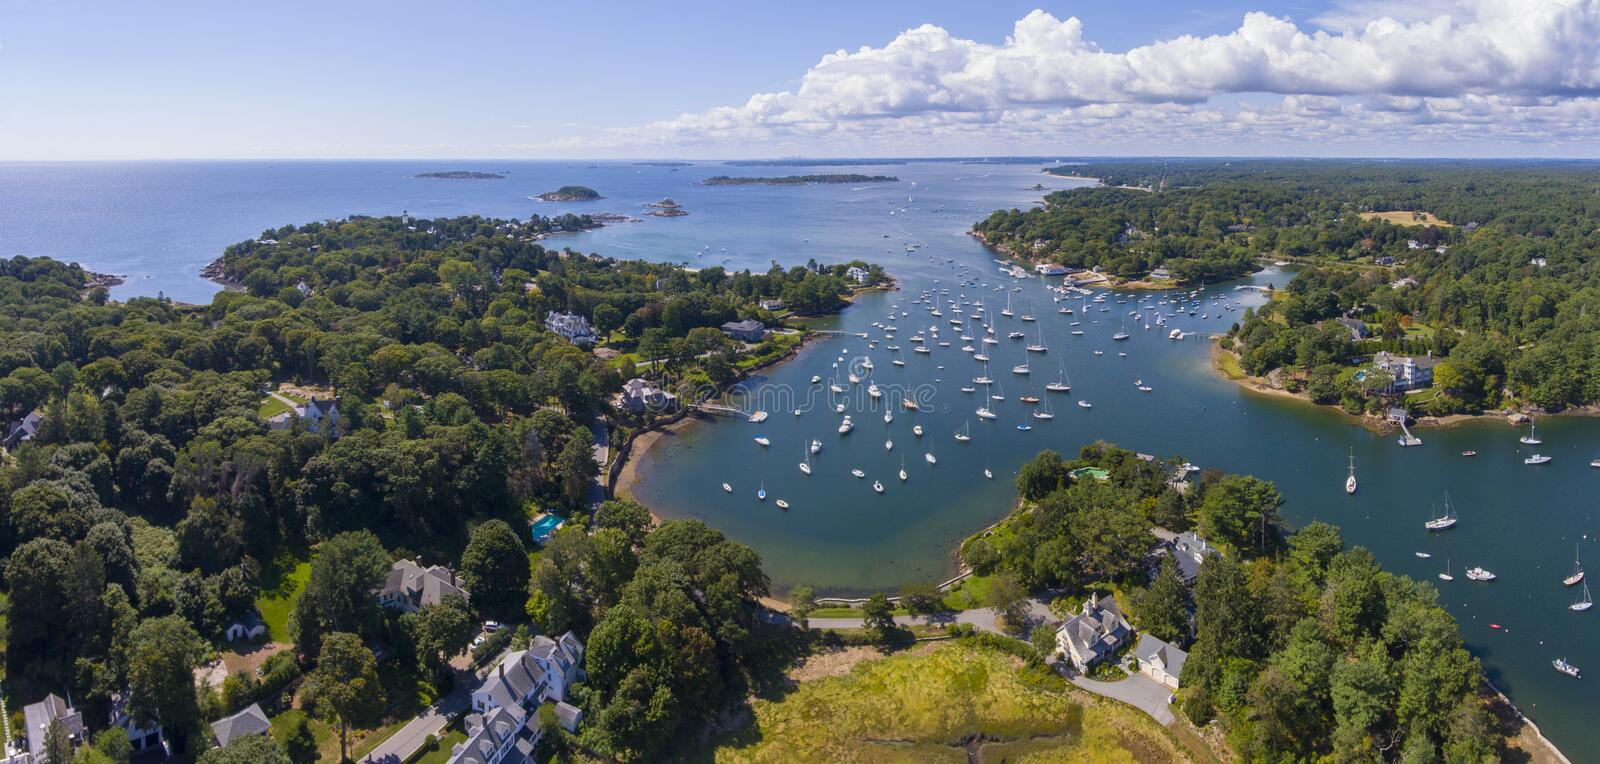 Manchester-by-the-sea, Cape Ann, Massachusetts, USA. Manchester Marine and harbor aerial view panorama, Manchester by the sea, Cape Ann, Massachusetts, USA royalty free stock photo